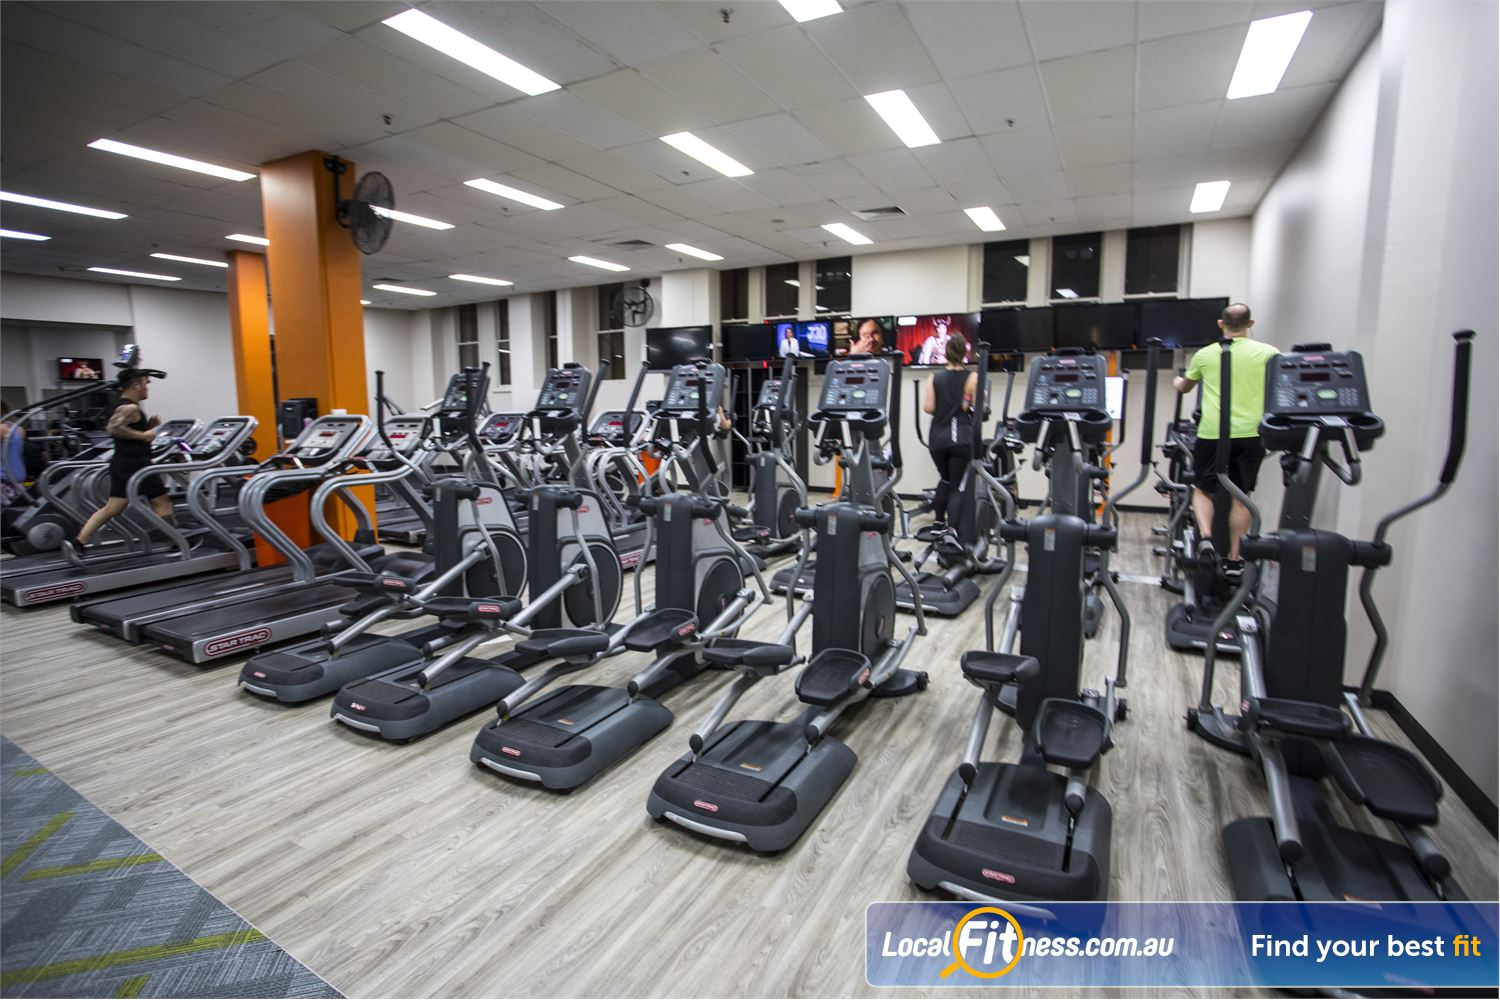 Fit n Fast Sydney Our FNF Sydney gym provides treadmills, cross-trainers, rowers and more.